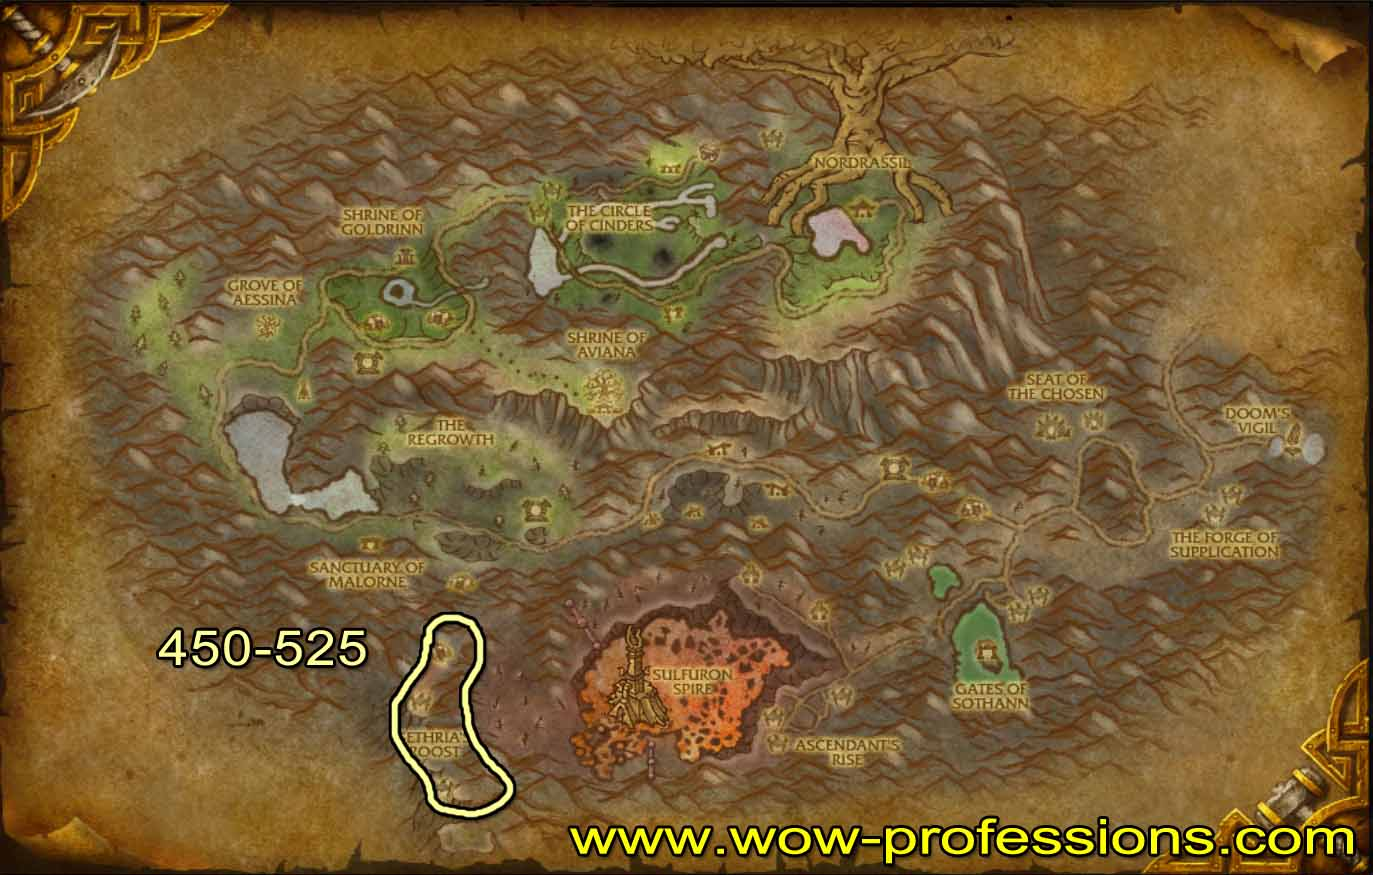 WoW human mount locations adult image